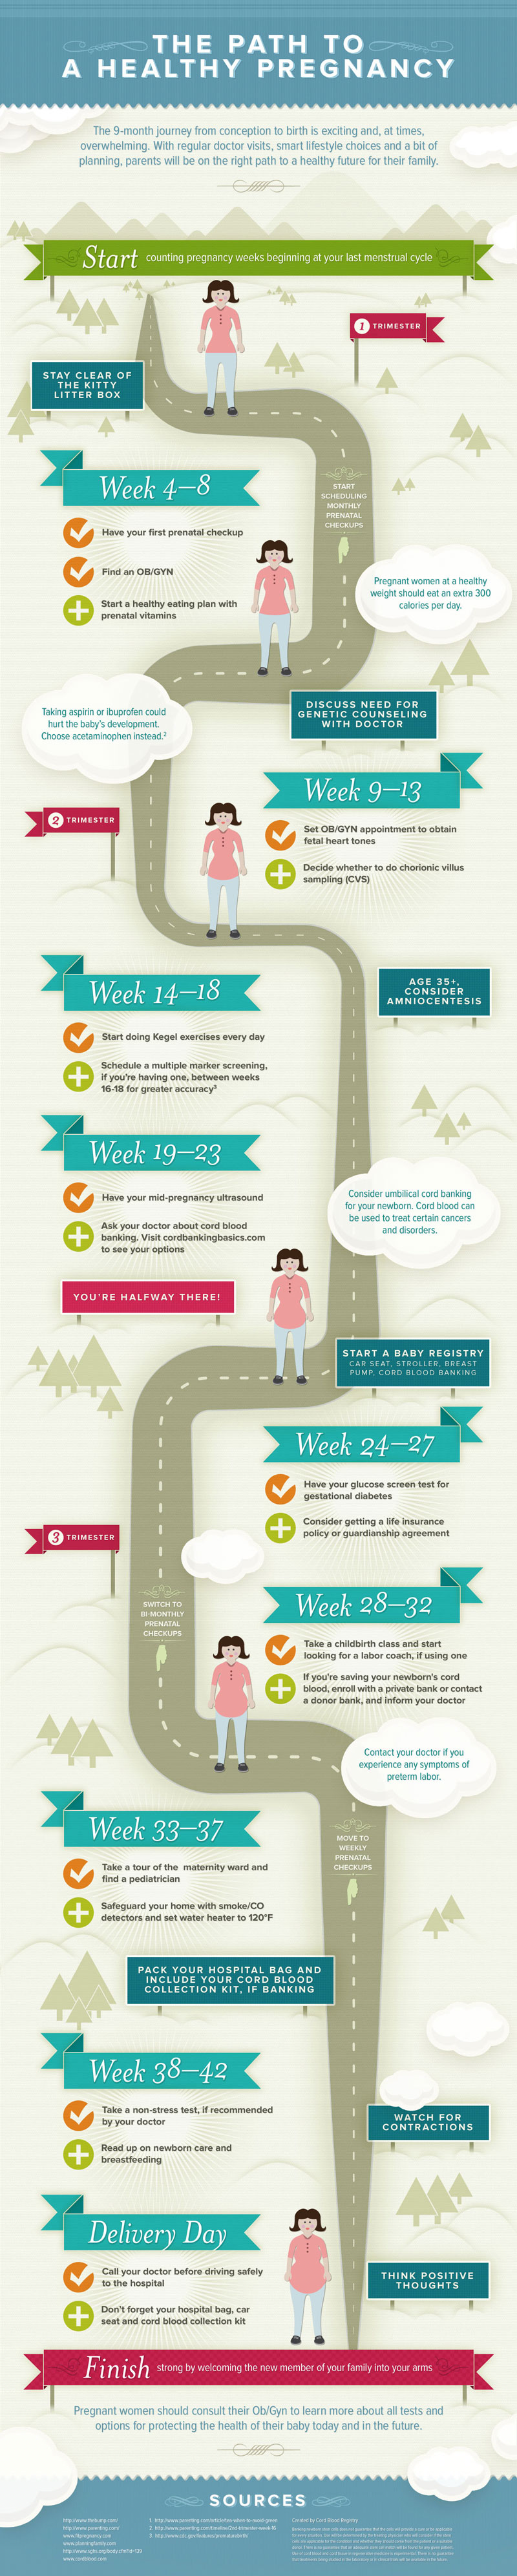 Week-By-Week Calendar for Healthy Pregnancy Care - Infographic